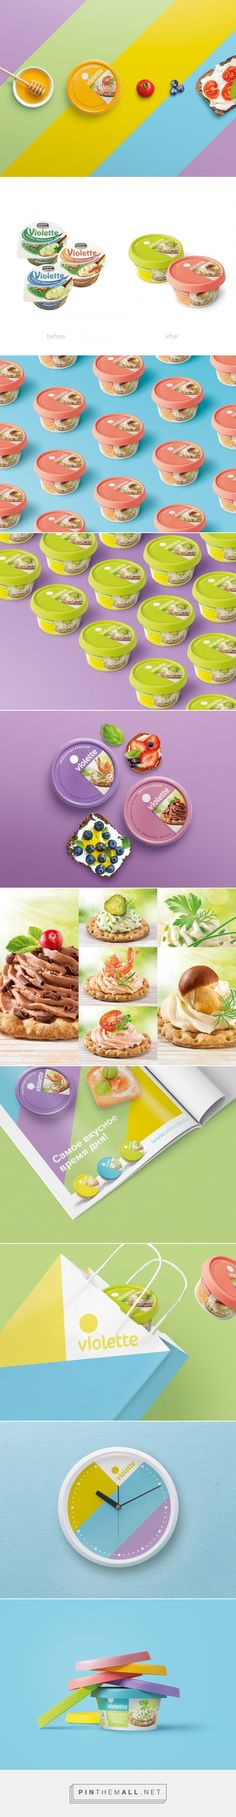 Violette Cream Cheese - Packaging of the World - Creative Package Design Gallery - http://www.packagingoftheworld.com/2016/04/violette-cream-cheese.html